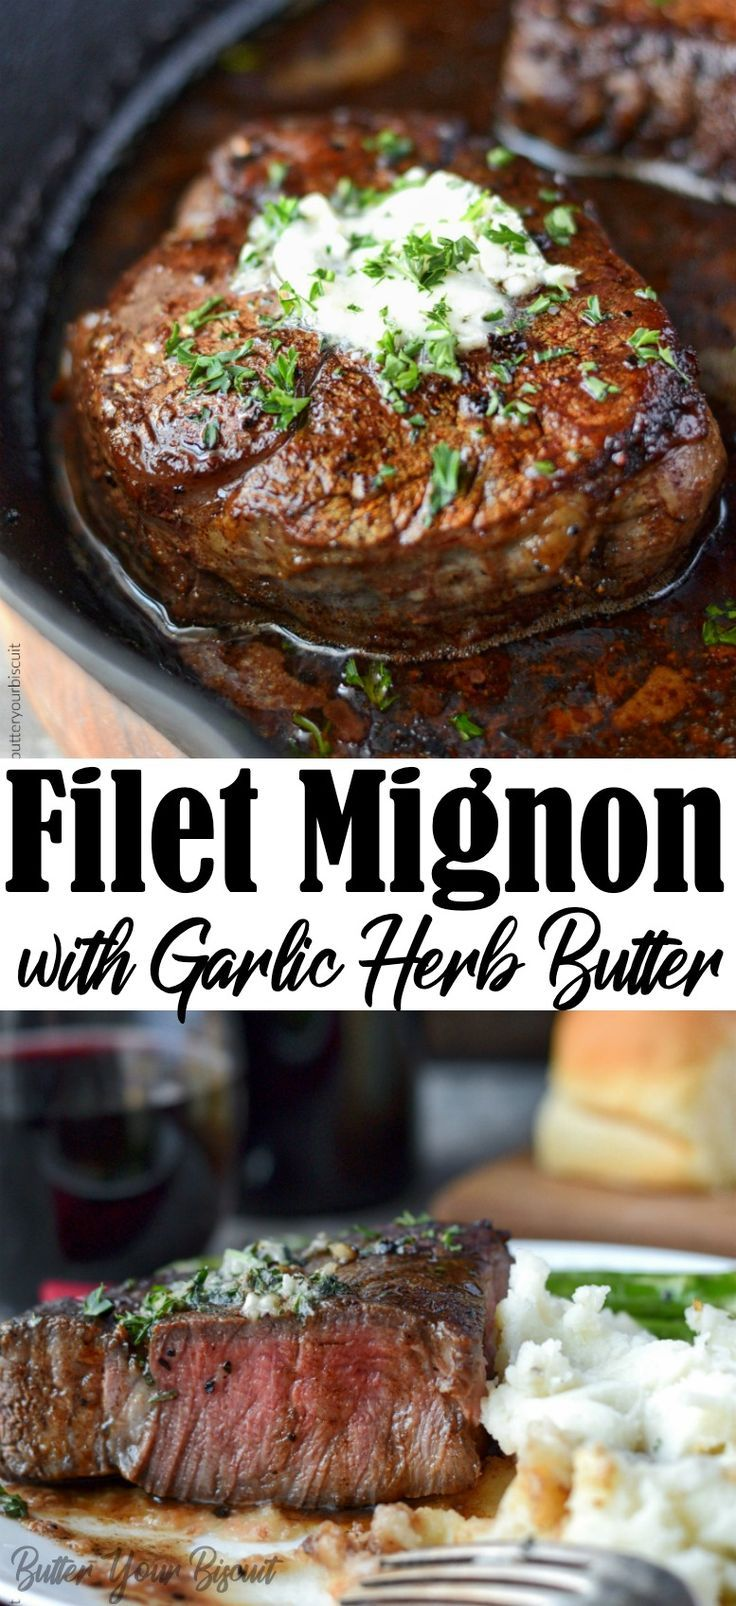 Photo of Filet Mignon with Garlic Herb Butter